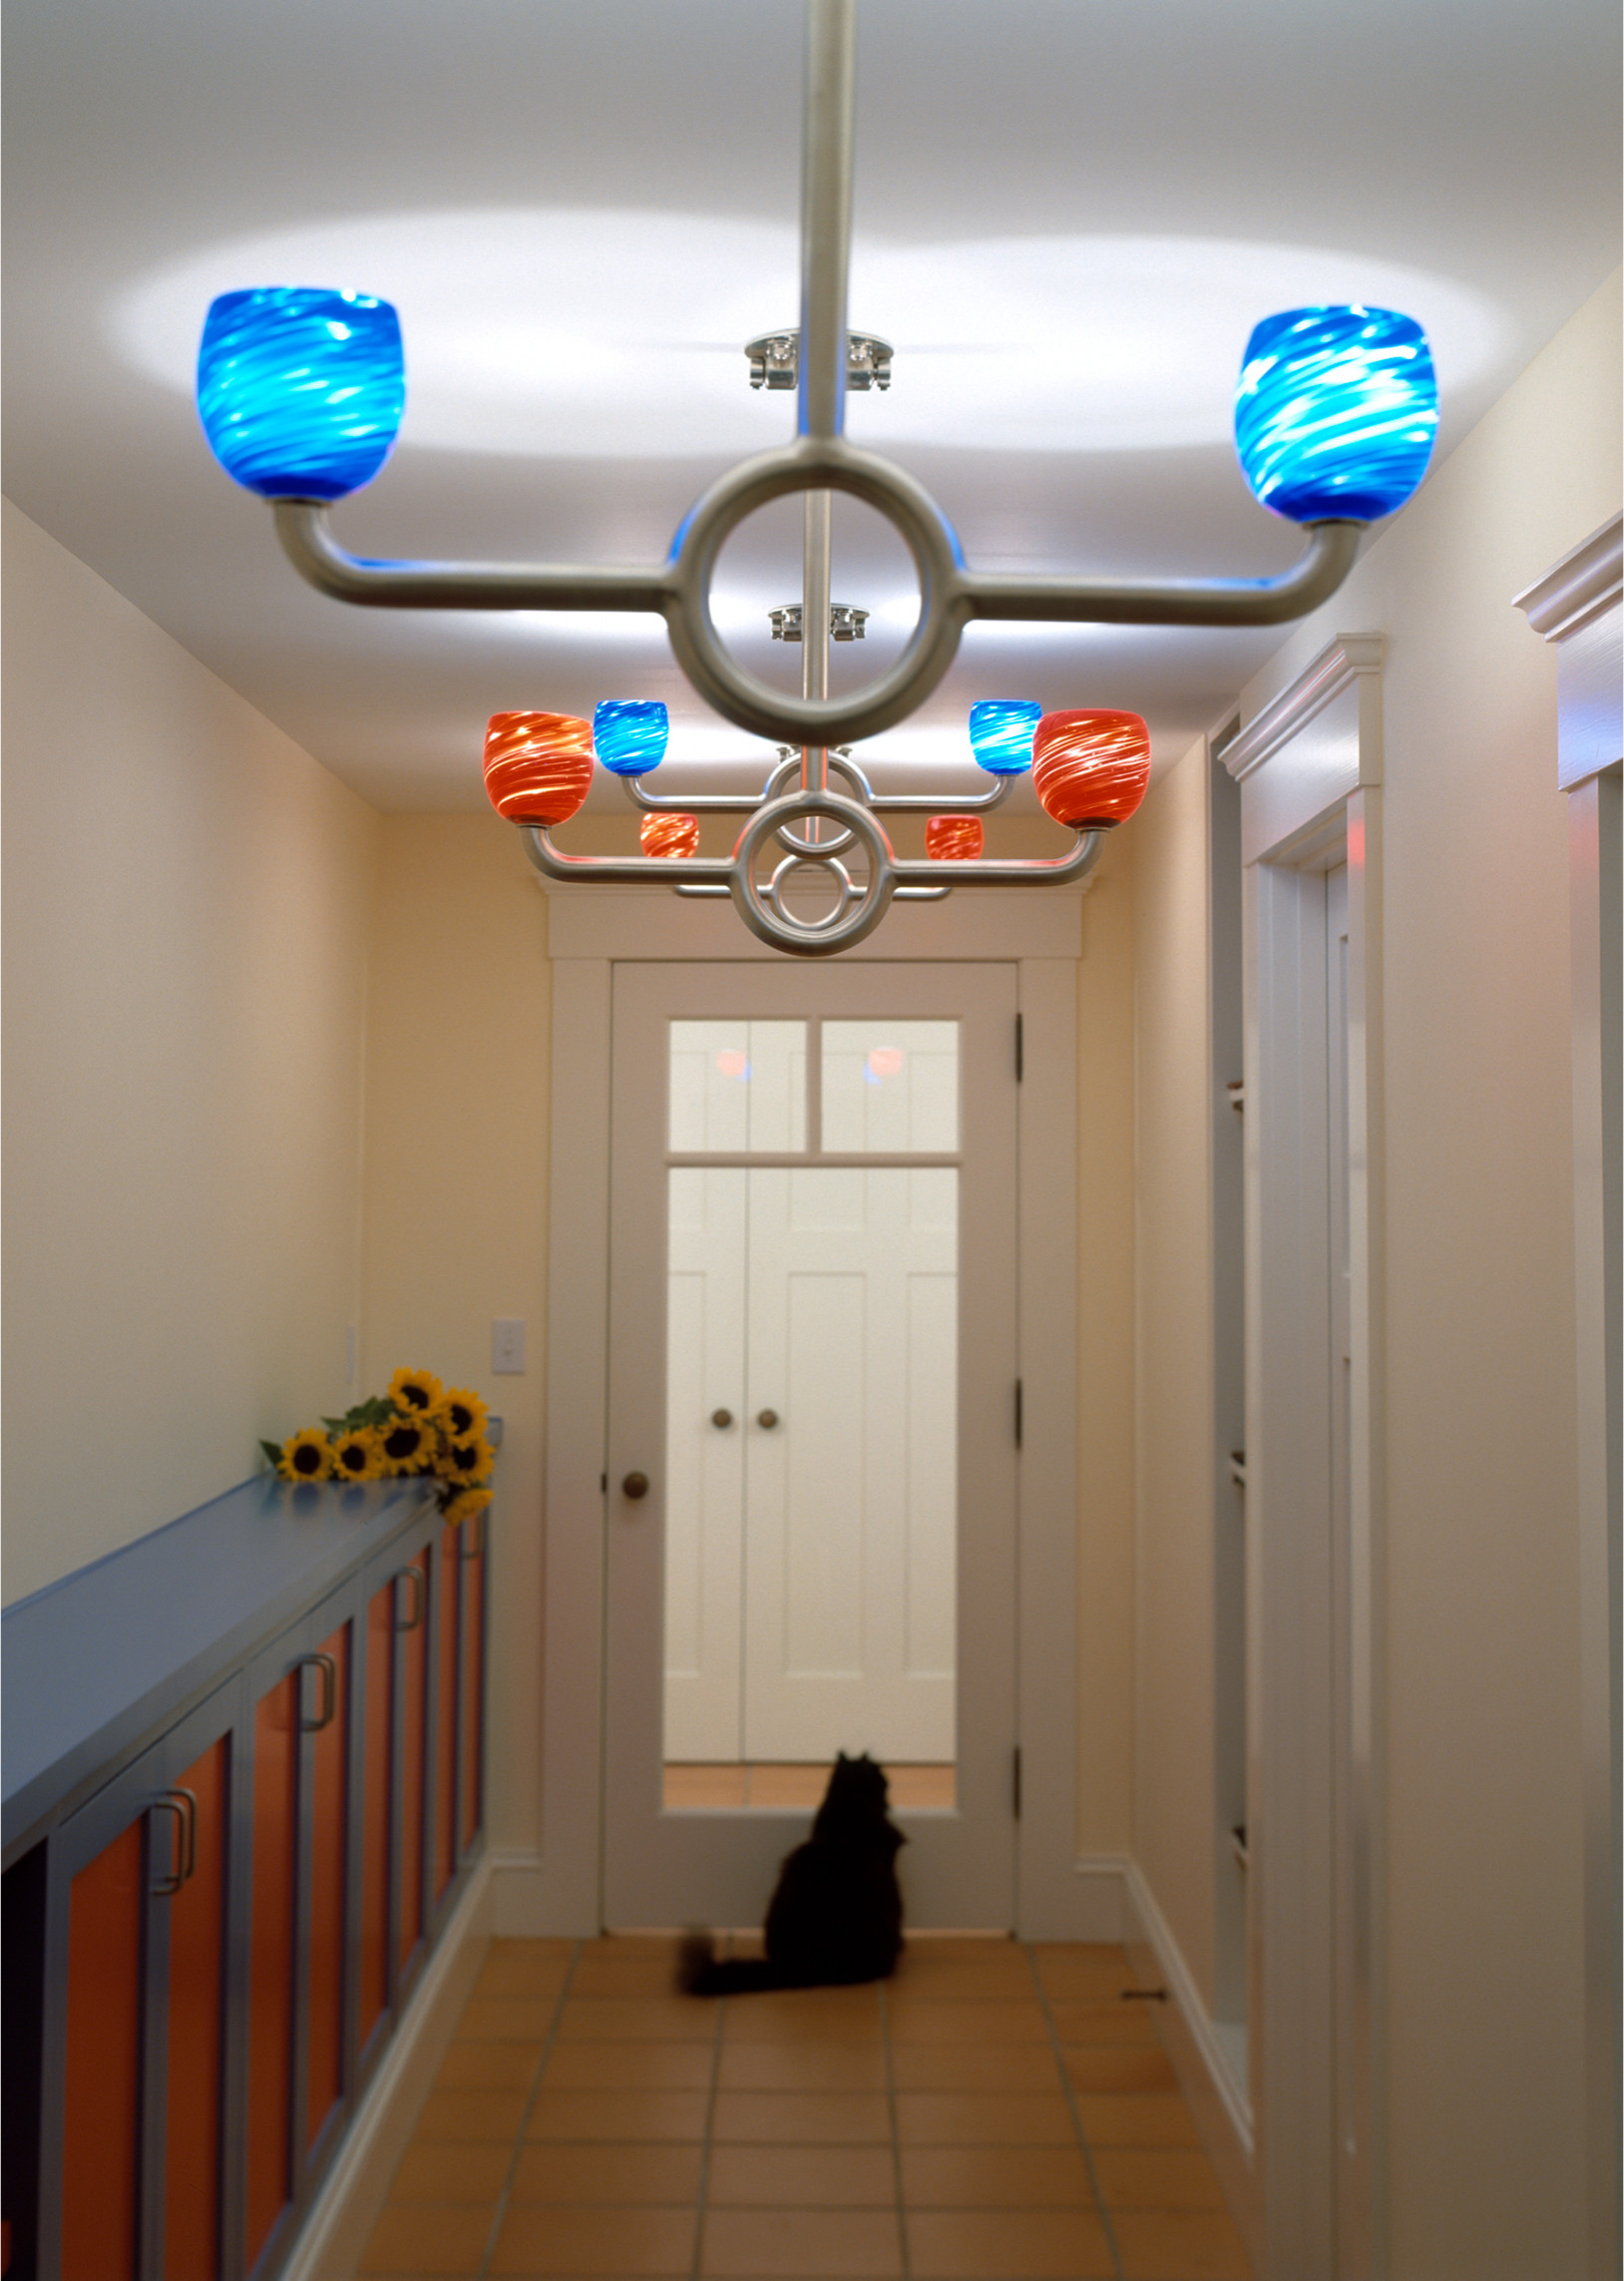 Swing-on lights for fun in the hall